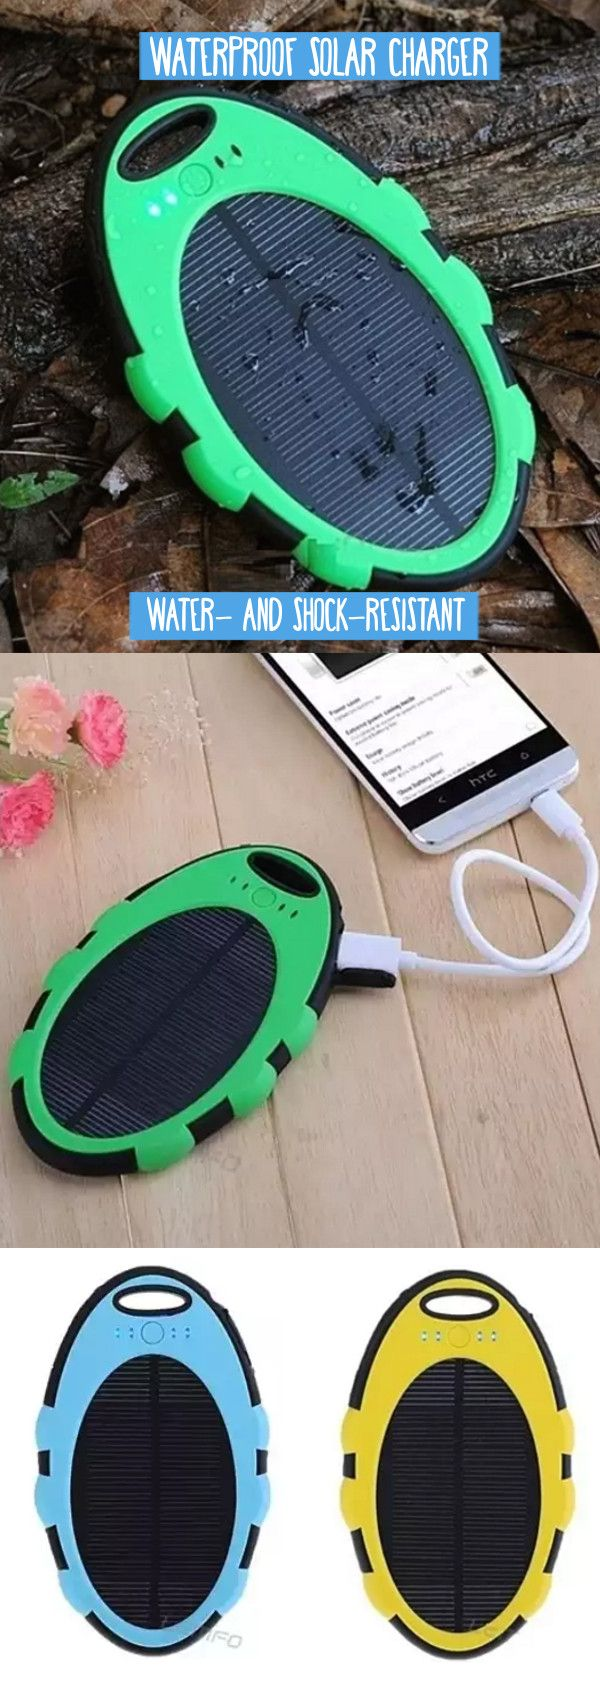 Want!! | Go Green with this solar charger! At last, a solar charger for the real world. It's water and shock resistant, and includes a hook to attach to your keychain, backpack or purse. With a USB port for easy charging, it's perfect for the outdoor enthusiast who wants to take on rainy autumn days, snowy winter months, or just relax poolside in the summer. Featuring a football grain design, the charger also has an anti skid padding to withstand shock.